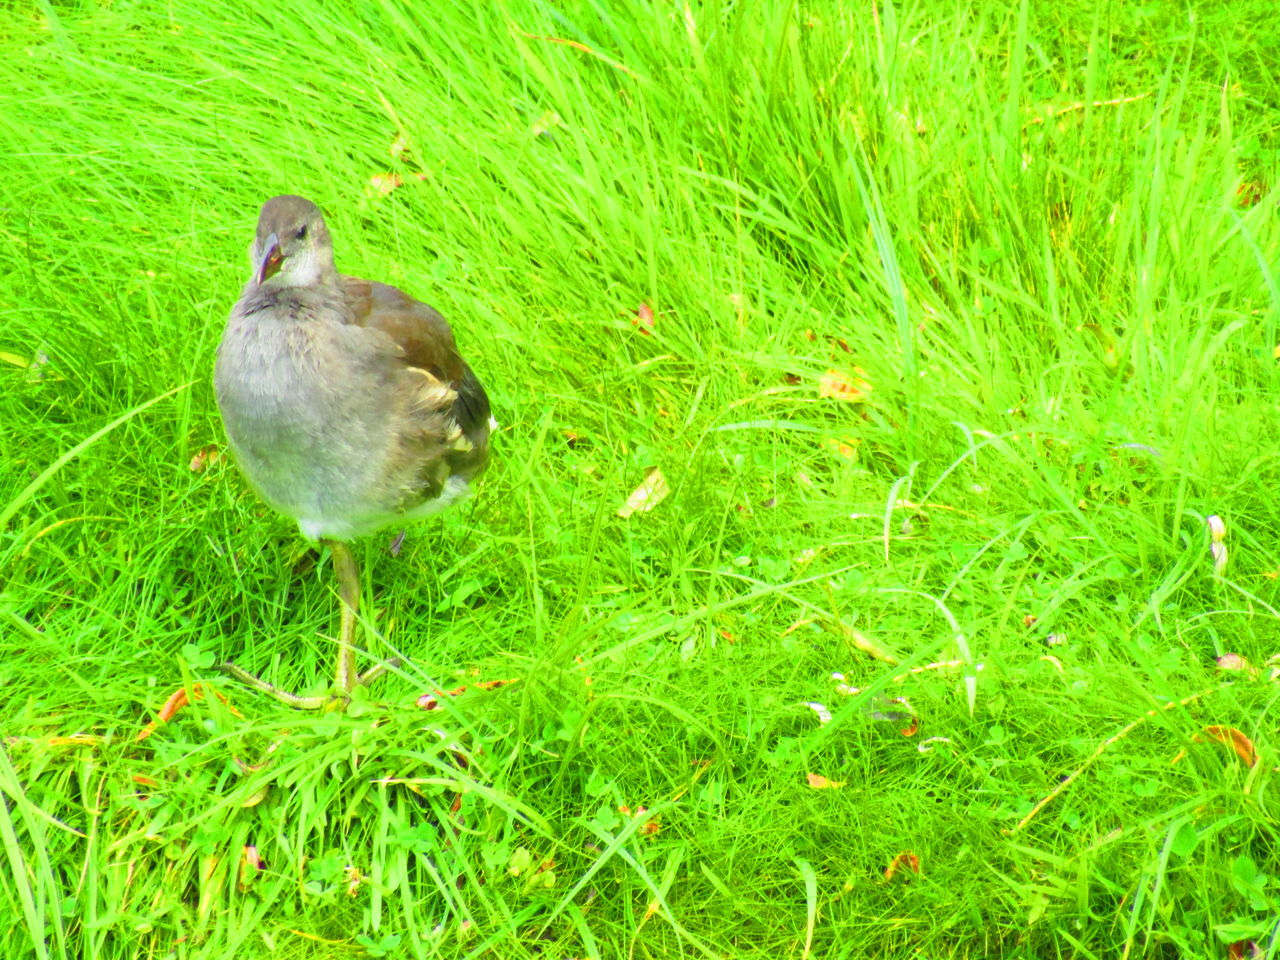 grass, bird, animal themes, animals in the wild, green color, one animal, nature, animal wildlife, field, no people, outdoors, day, perching, growth, beauty in nature